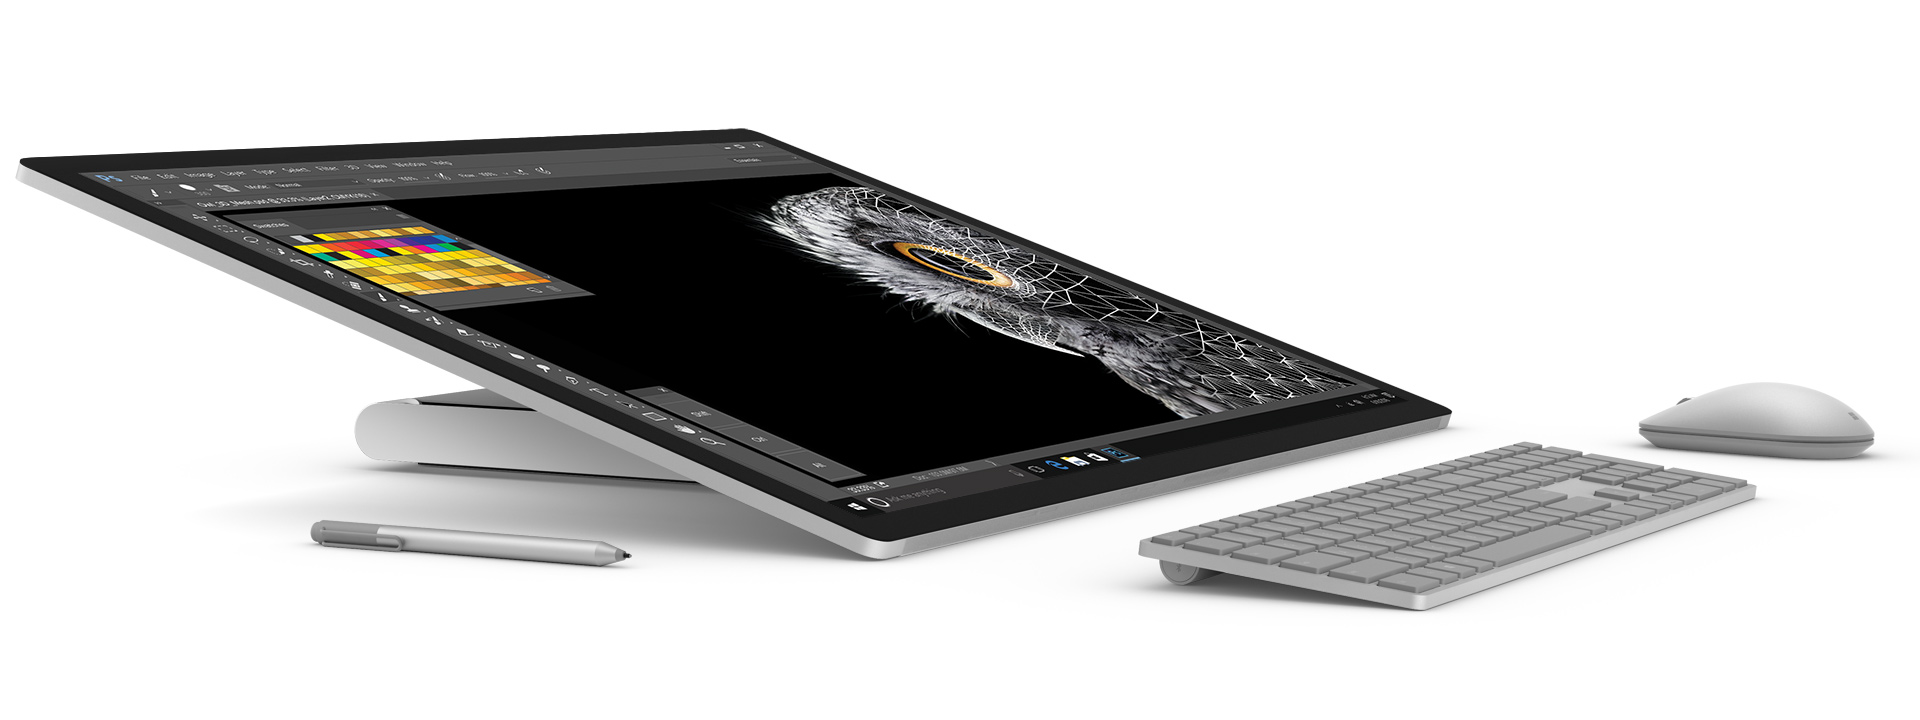 Surface Studio vlak neergelegd in studiomodus, naar rechts gericht met Surface-pen, Surface Keyboard en Surface Mouse ervoor